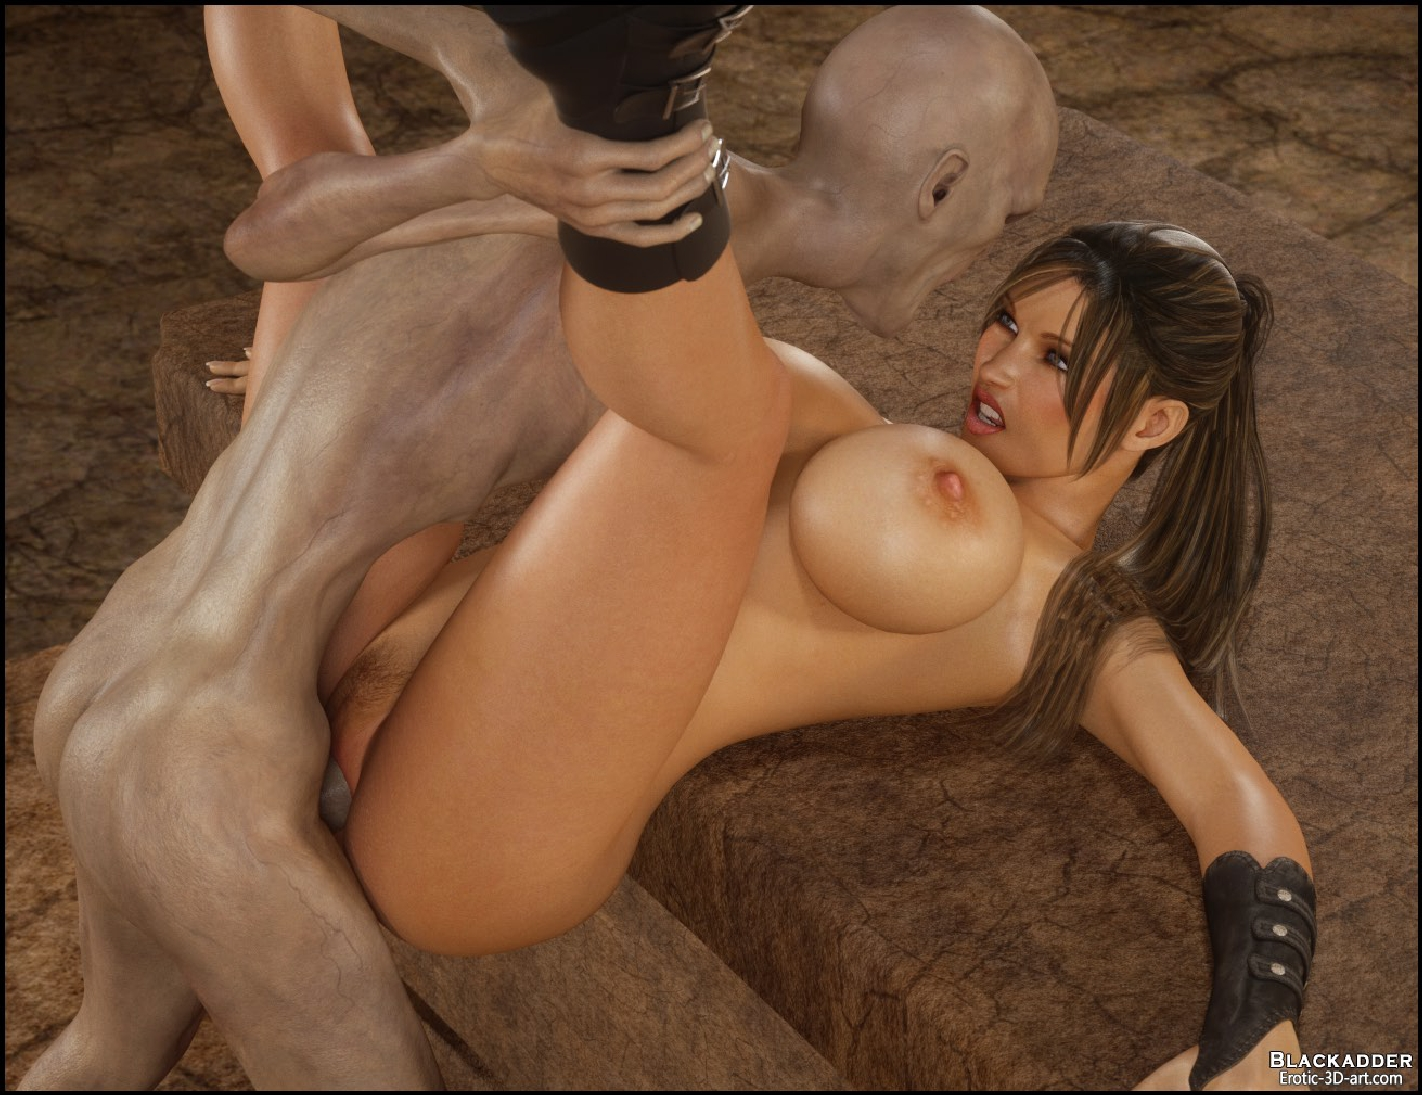 Skyrim nude mod big boobs pornos tubes